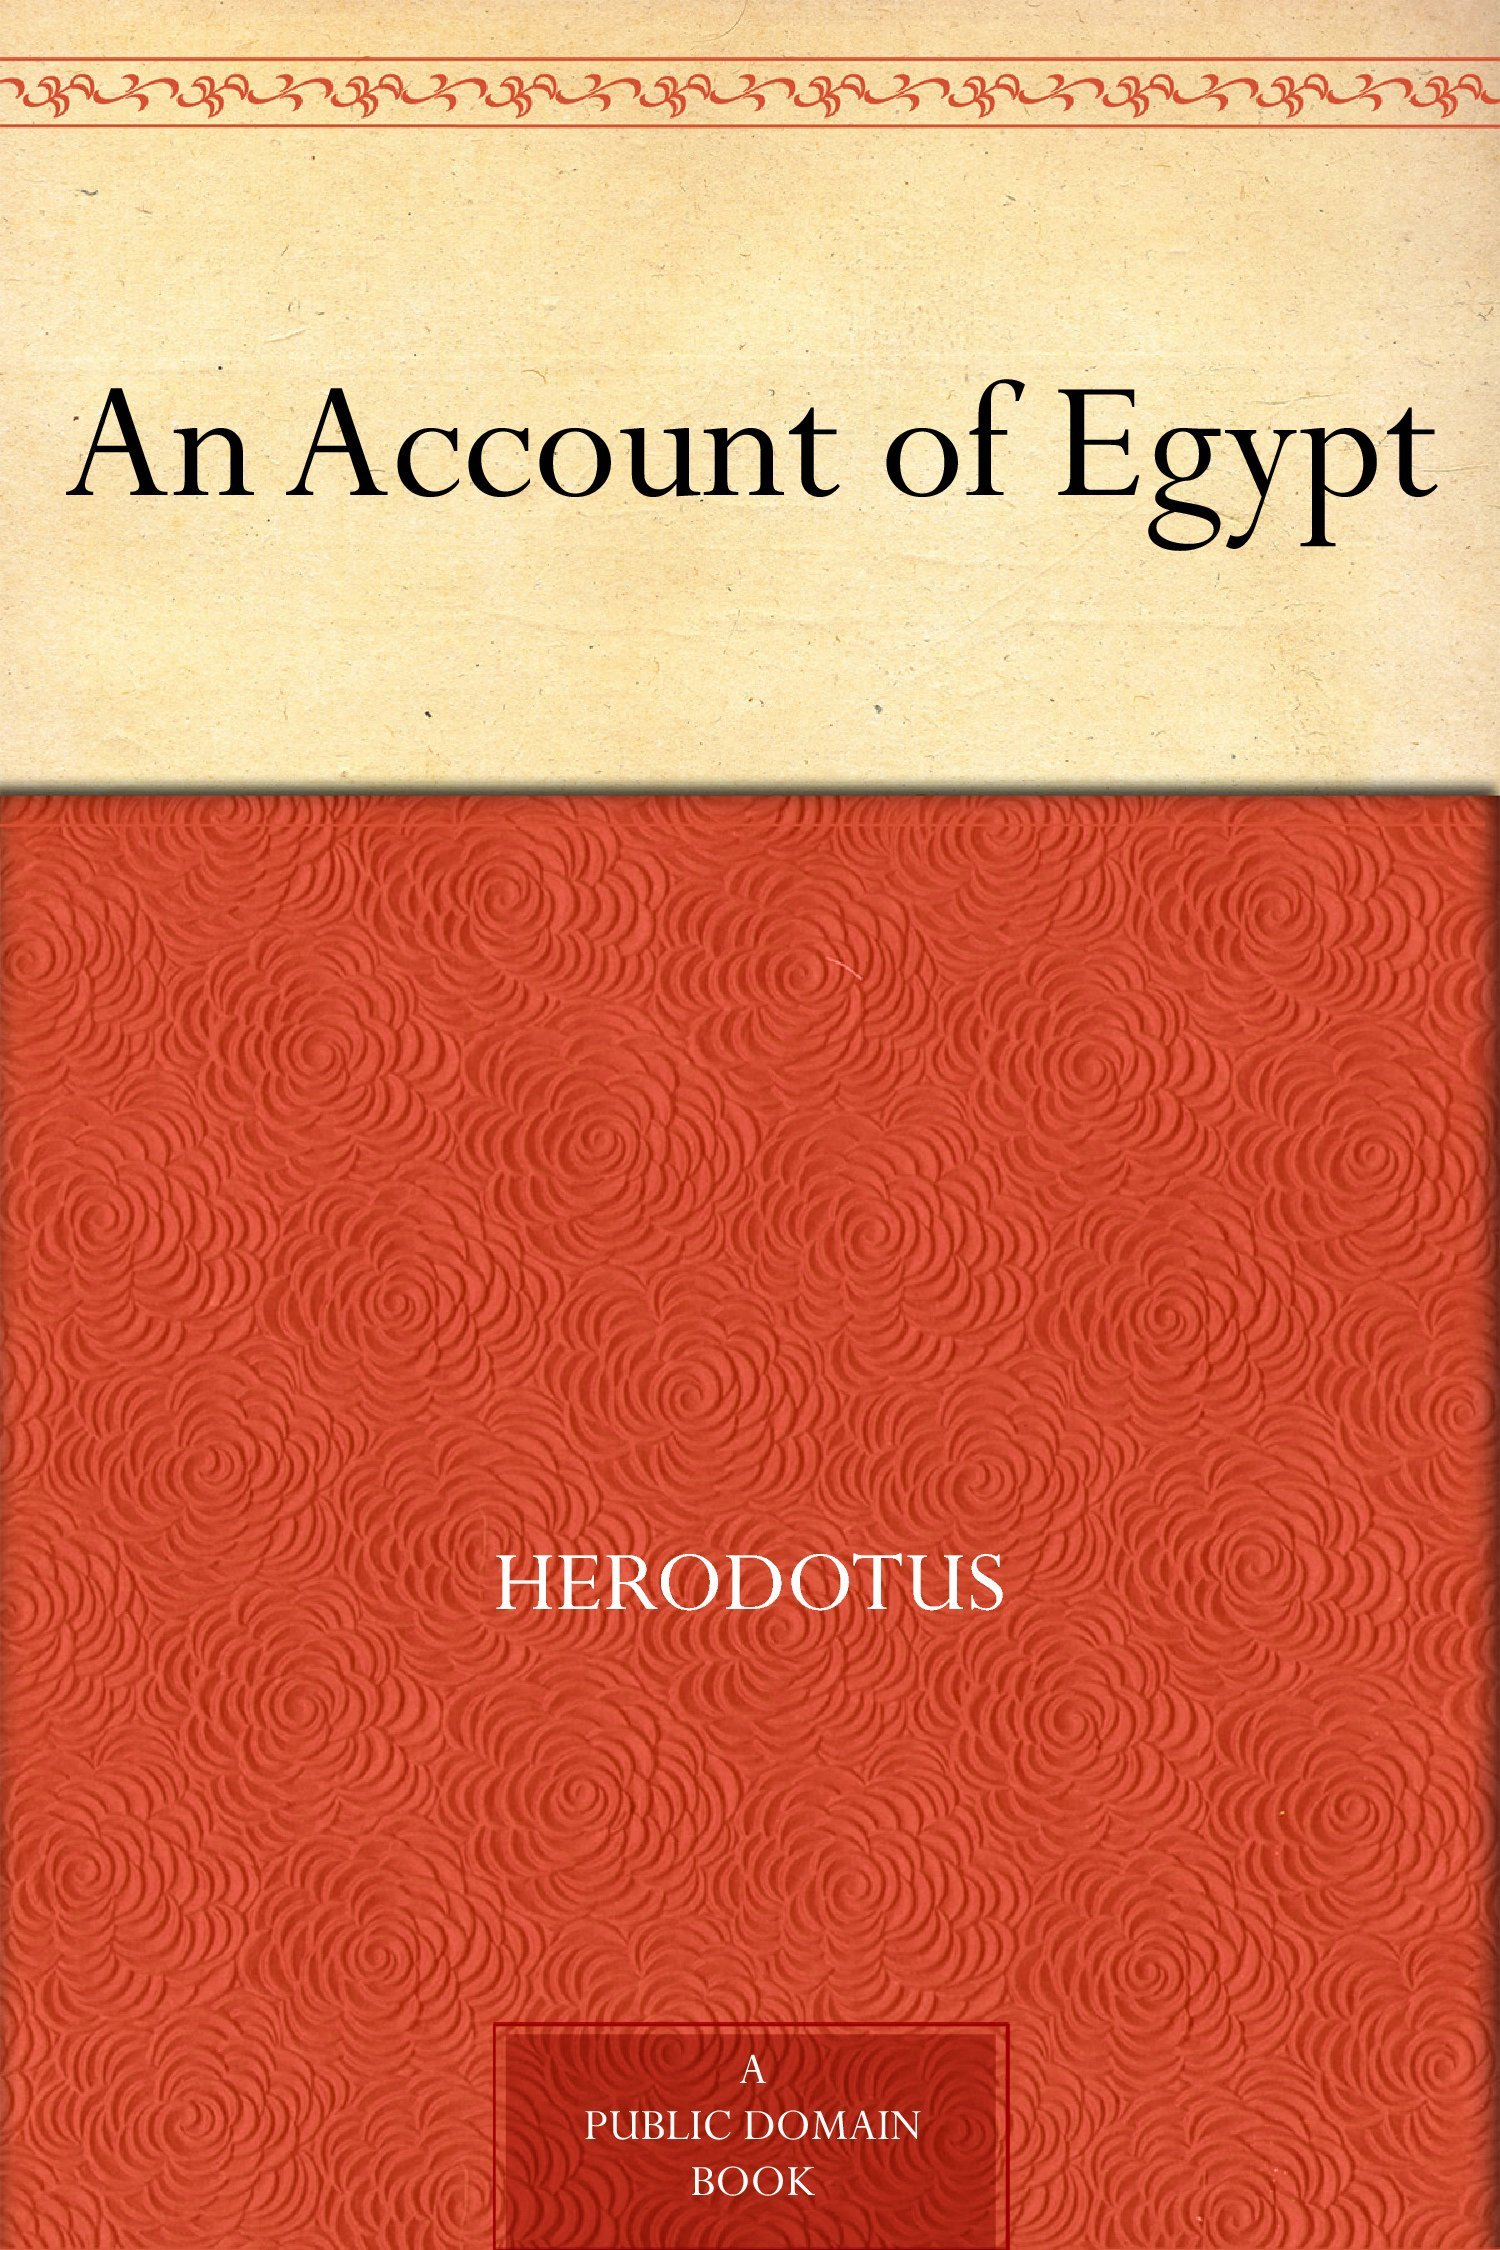 Image OfAn Account Of Egypt